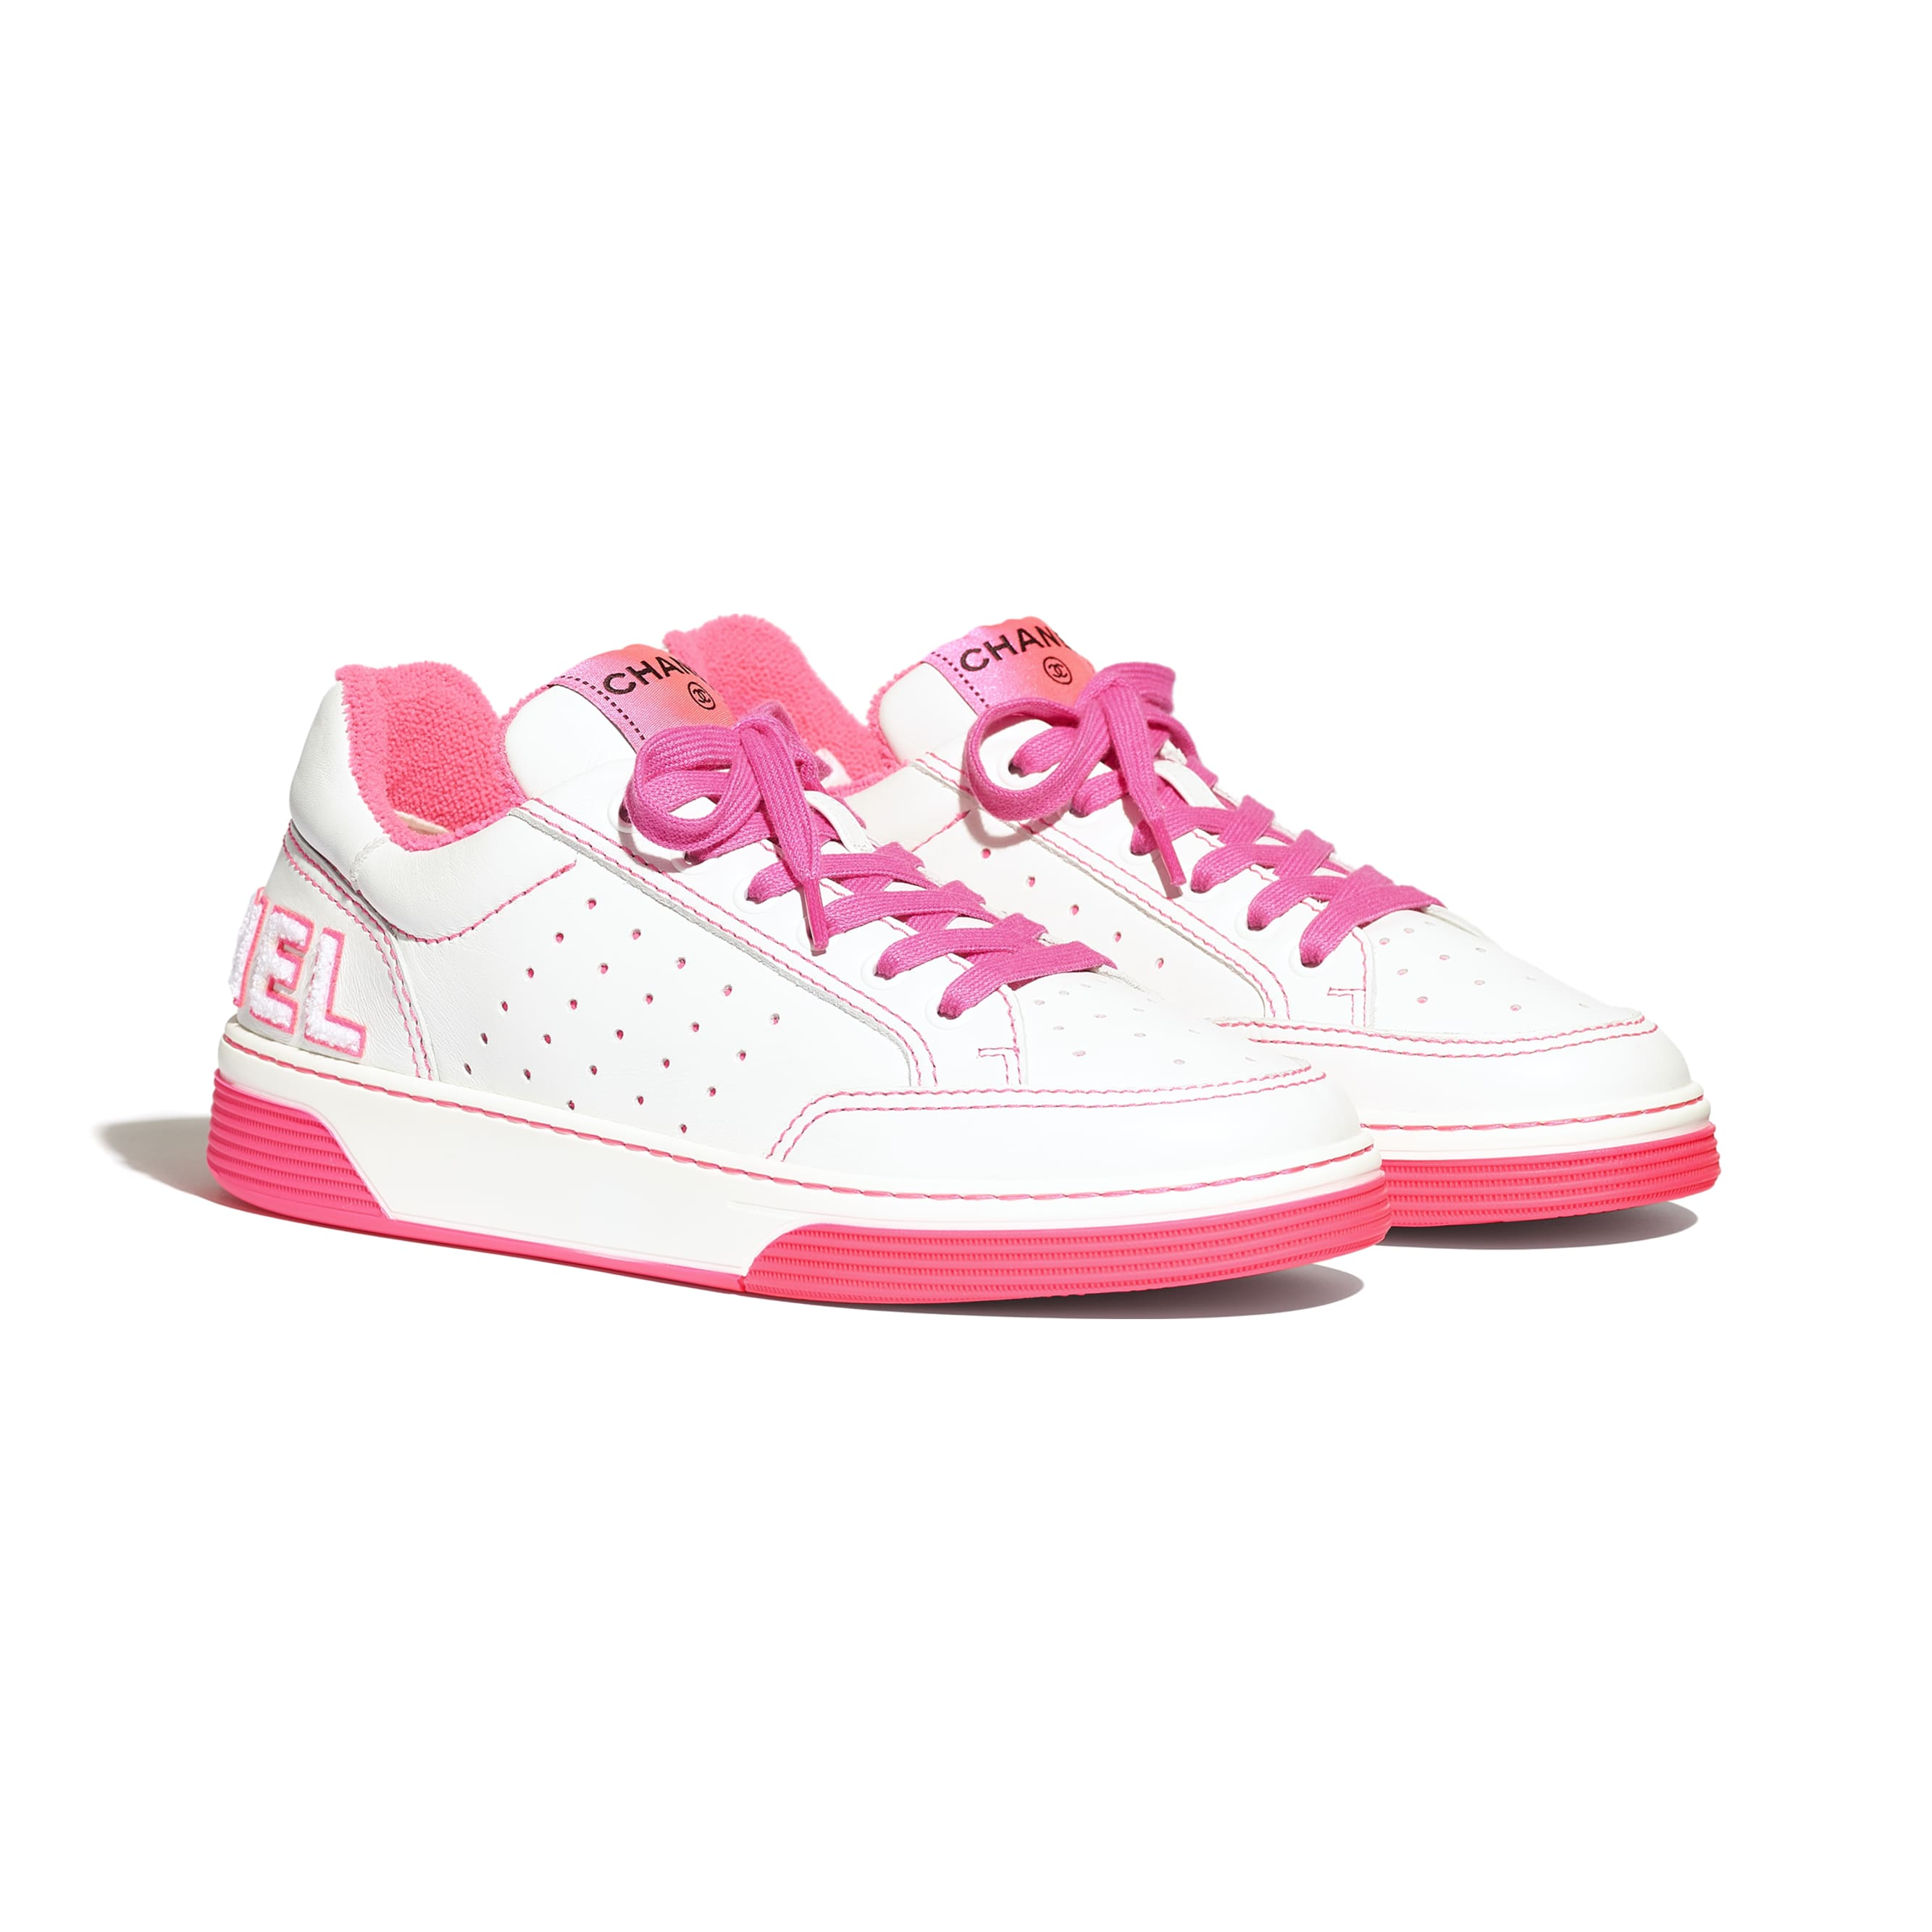 Trainers - White & Fuchsia - Calfskin - CHANEL - Alternative view - see standard sized version